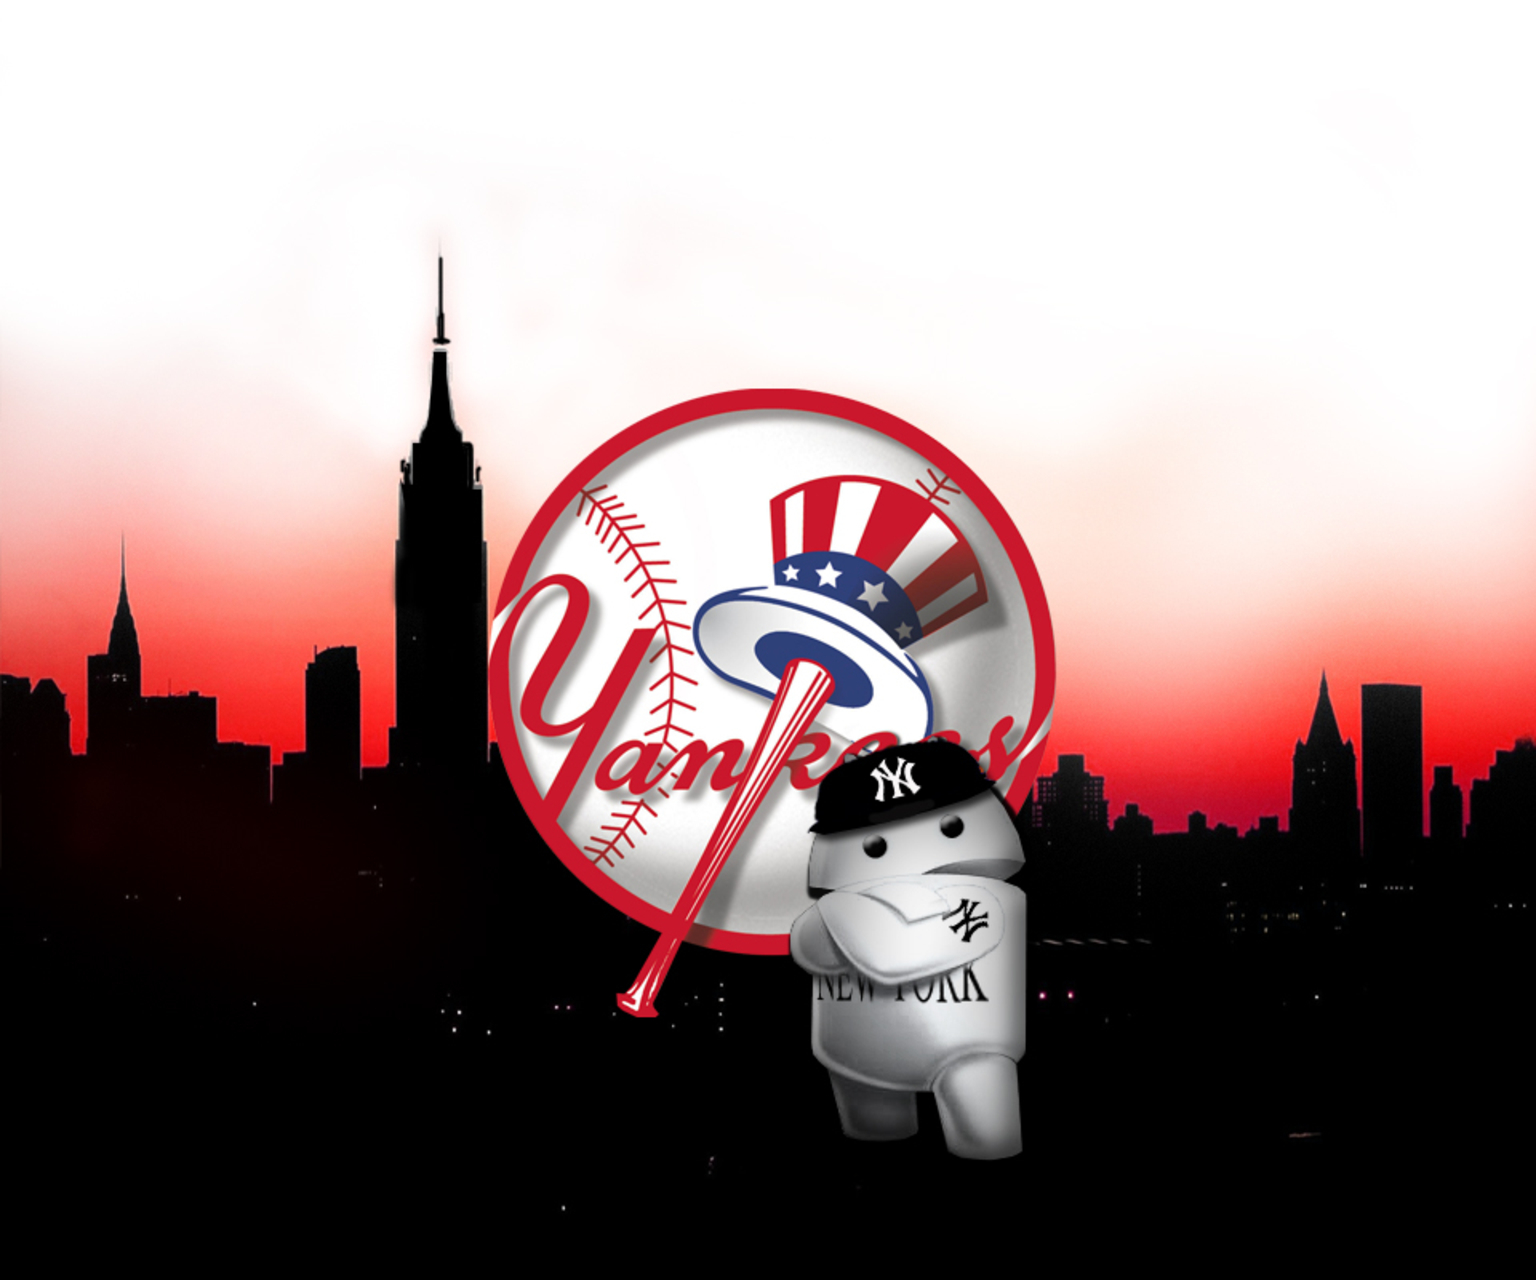 Yankees Baseball Wallpaper Posted By Ethan Peltier